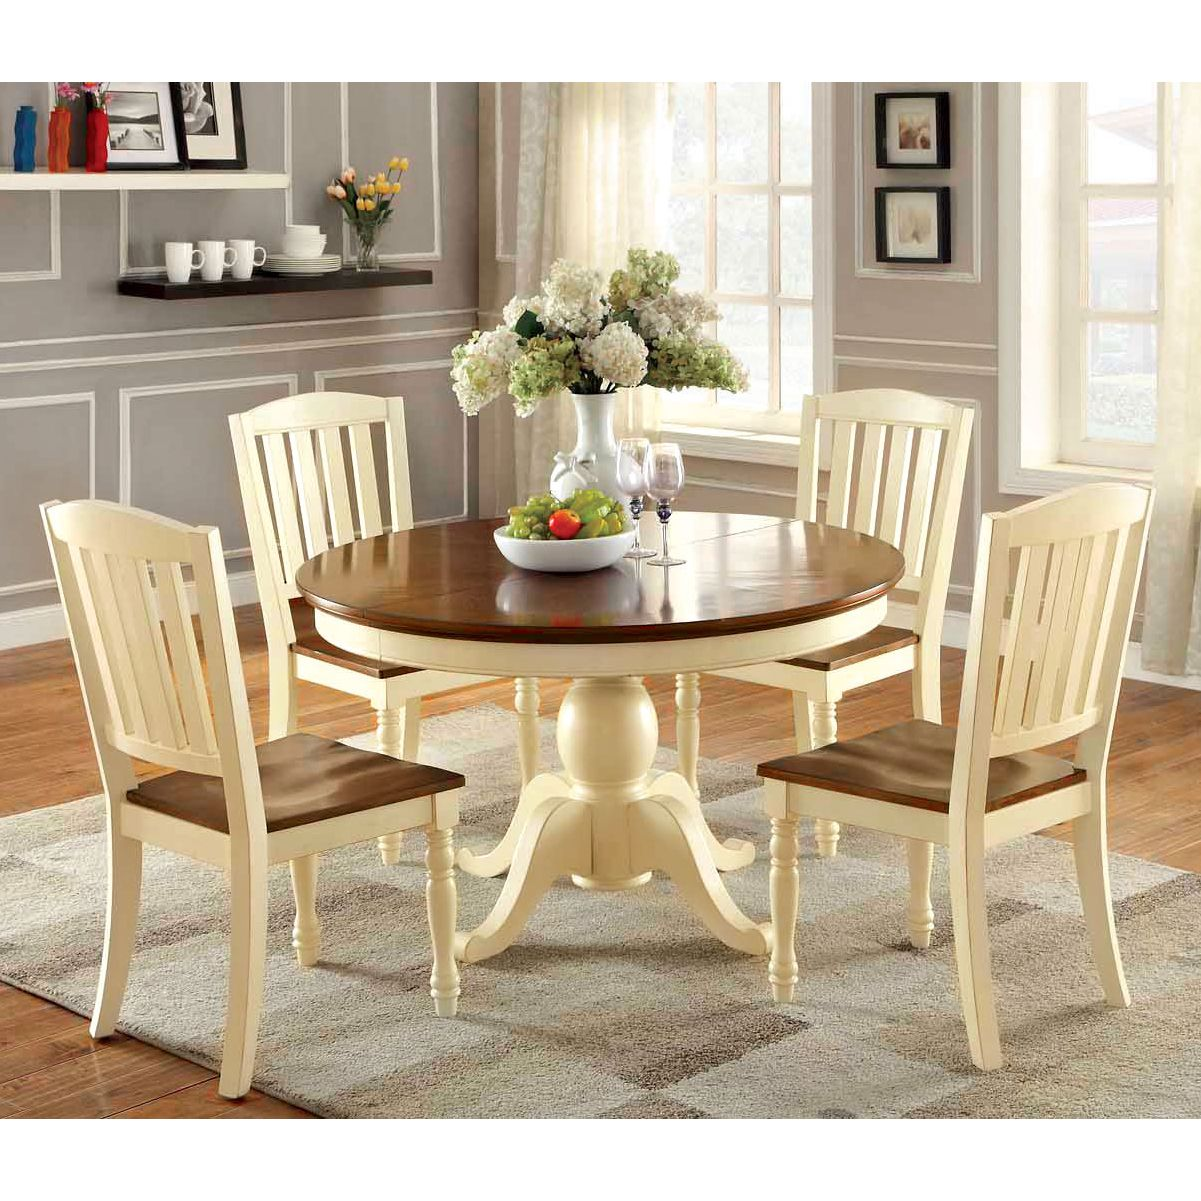 Superior Furniture Of America Bethannie 5 Piece Cottage Style Oval Dining Set  (Vintage White U0026